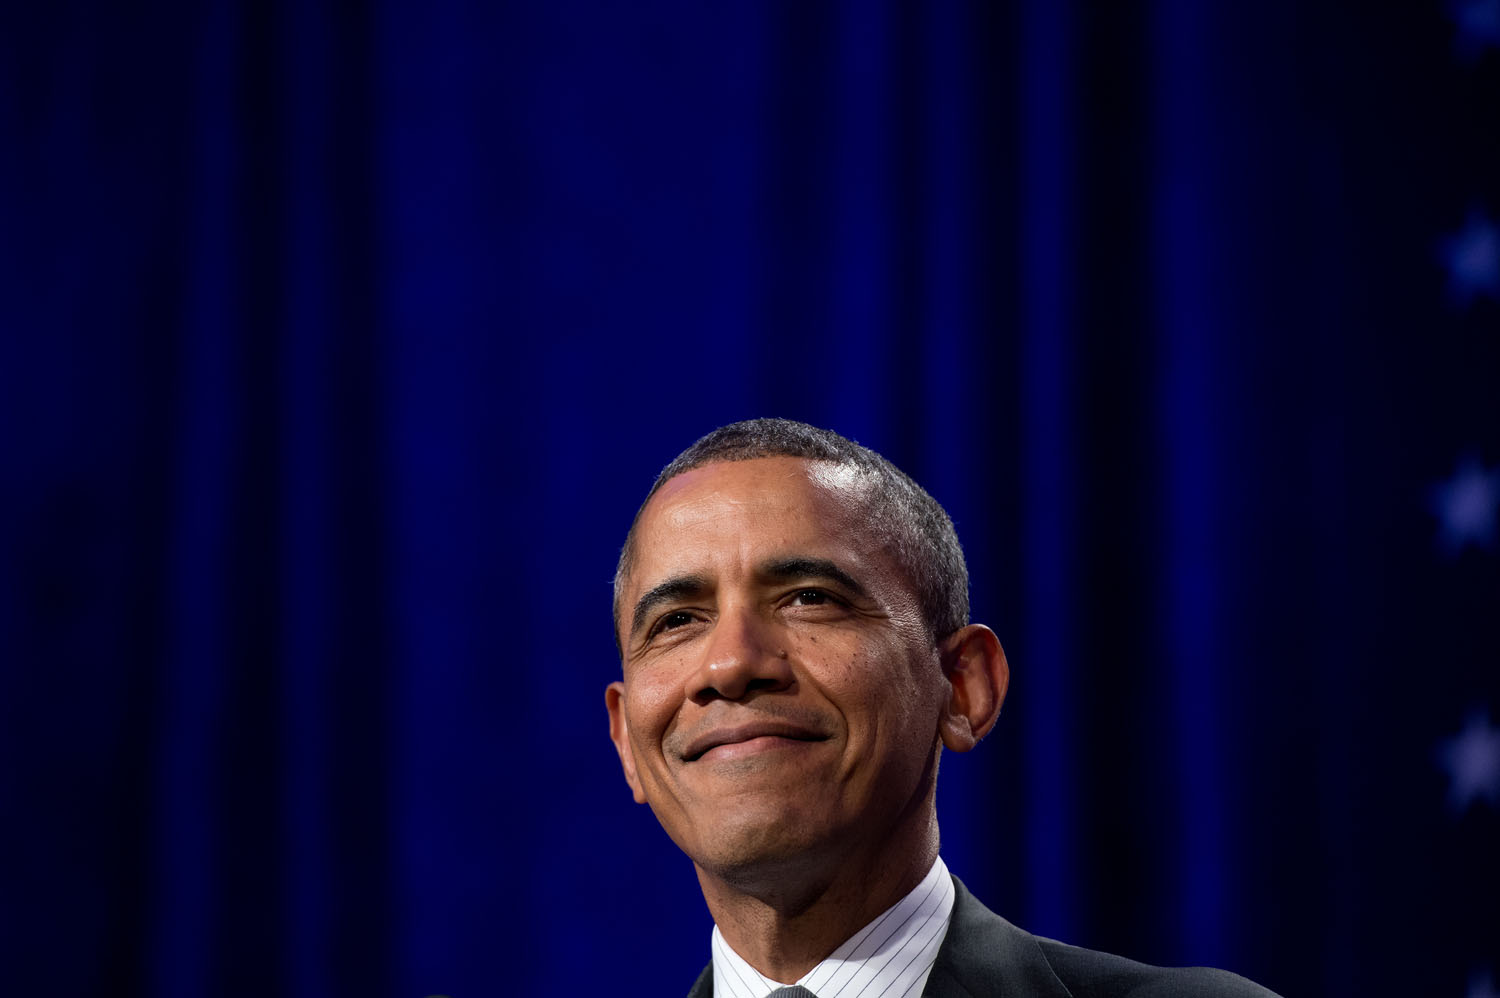 U.S. President Barack Obama addresses the National Organizing summit in Washington on Feb. 25, 2014.